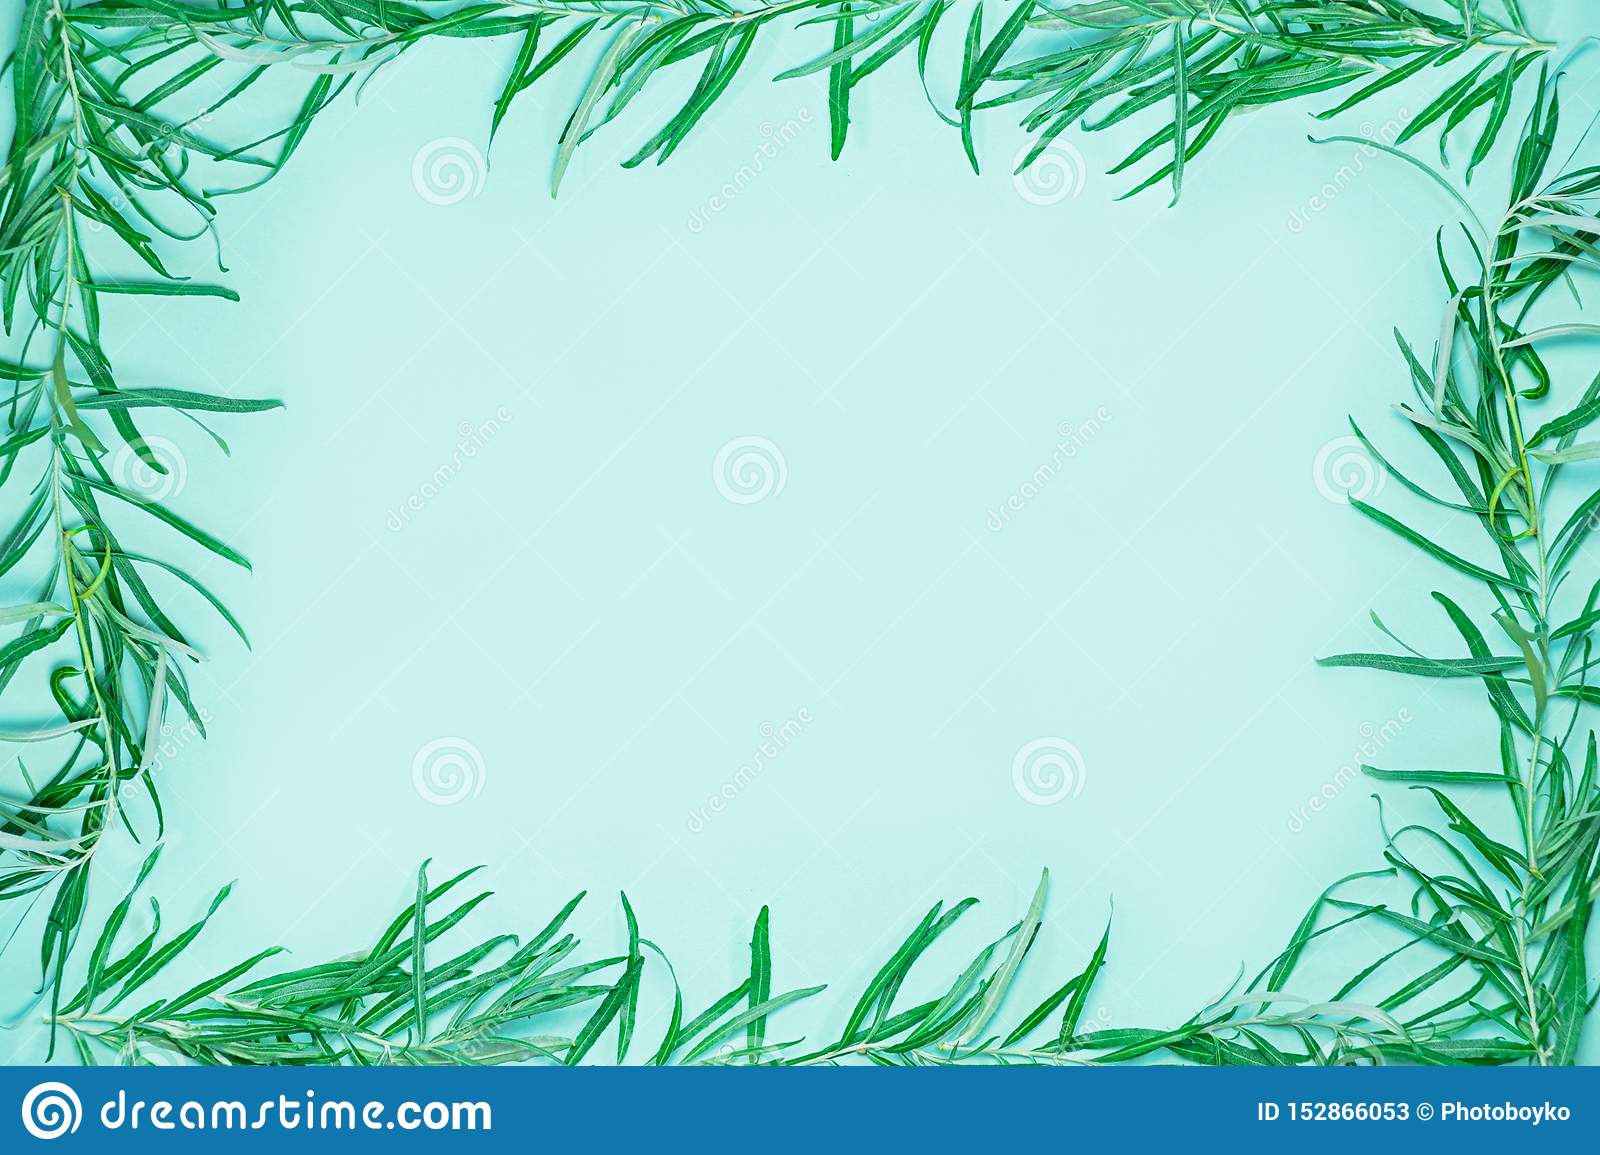 Green frame composed of fresh green branches and leaves. Background and copy space image symbolizing ecology, nature,